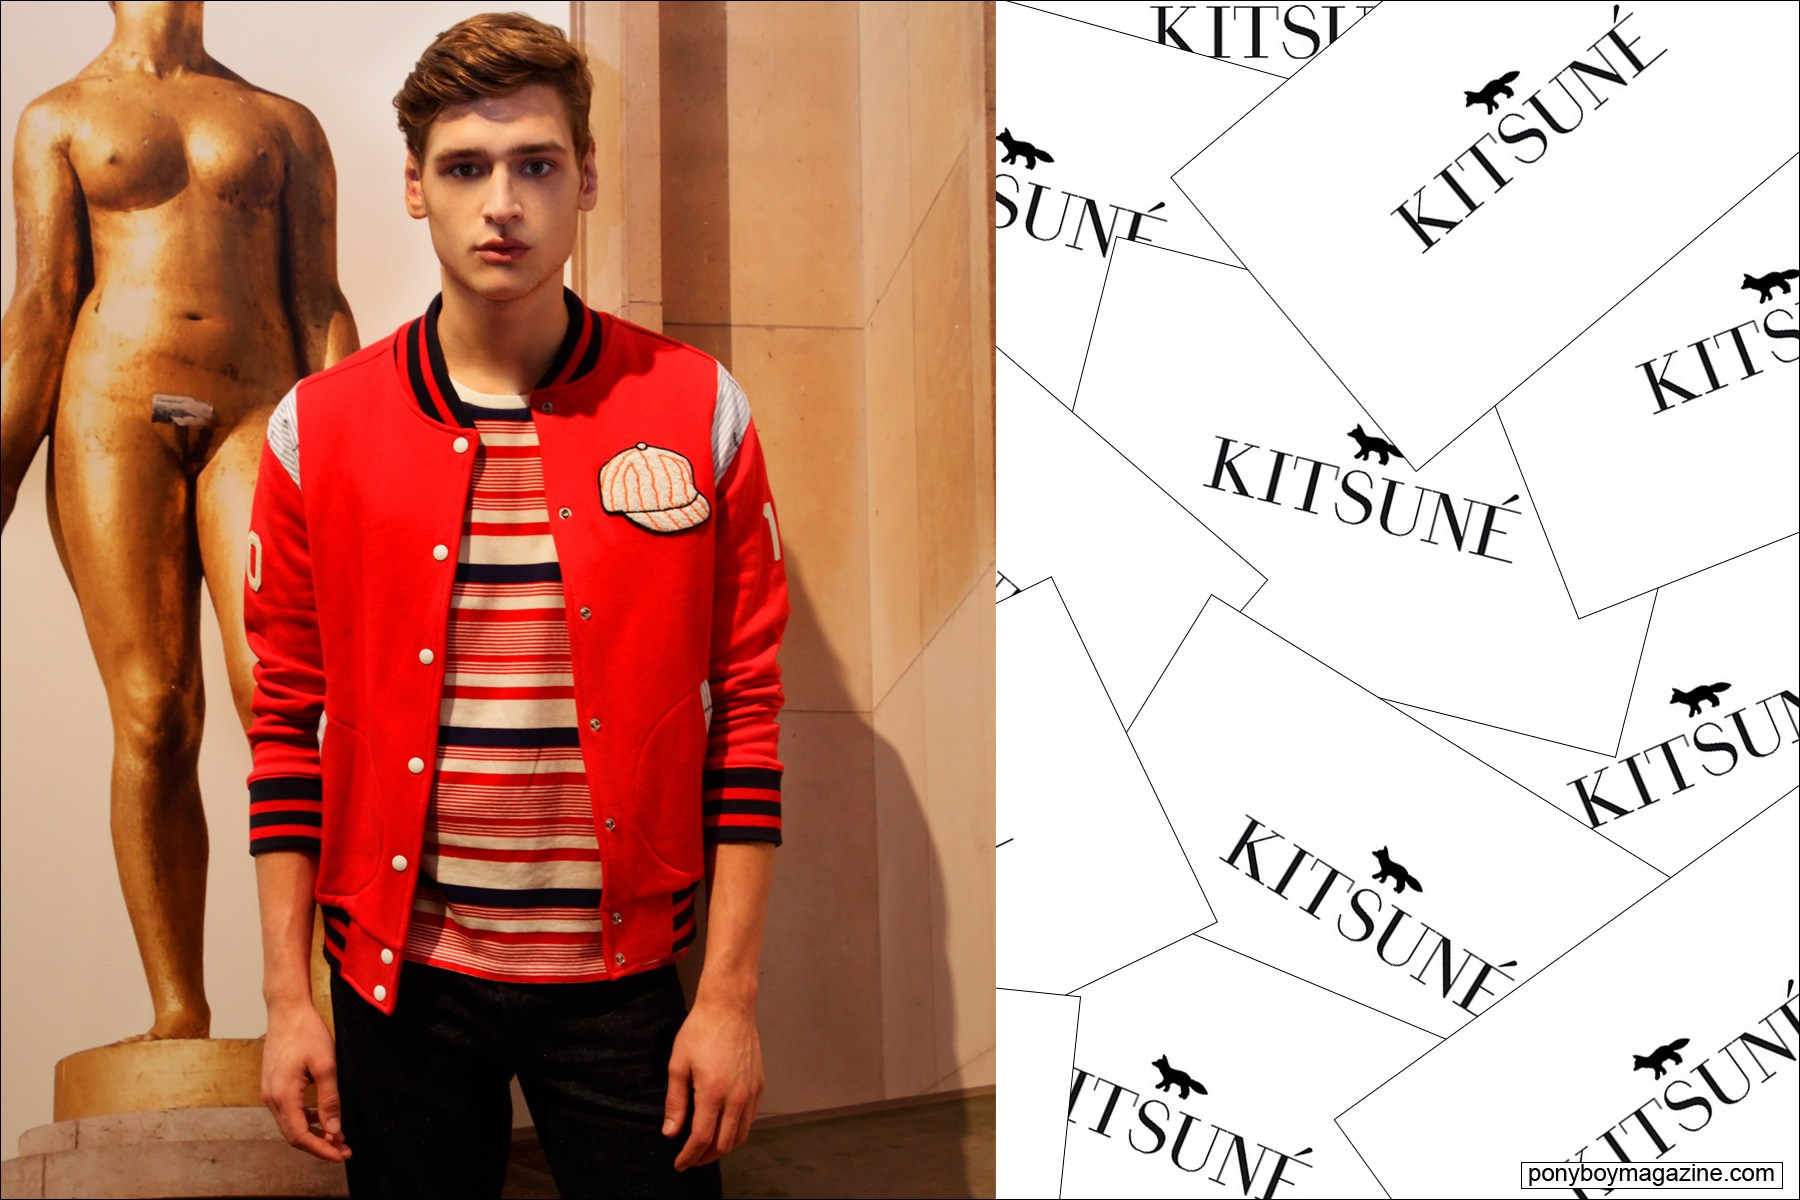 A male model wears a 1950's style letterman jacket designed by Maison Kitsune for Spring/Summer 2015. Photograph by Alexander Thompson for Ponyboy Magazine.